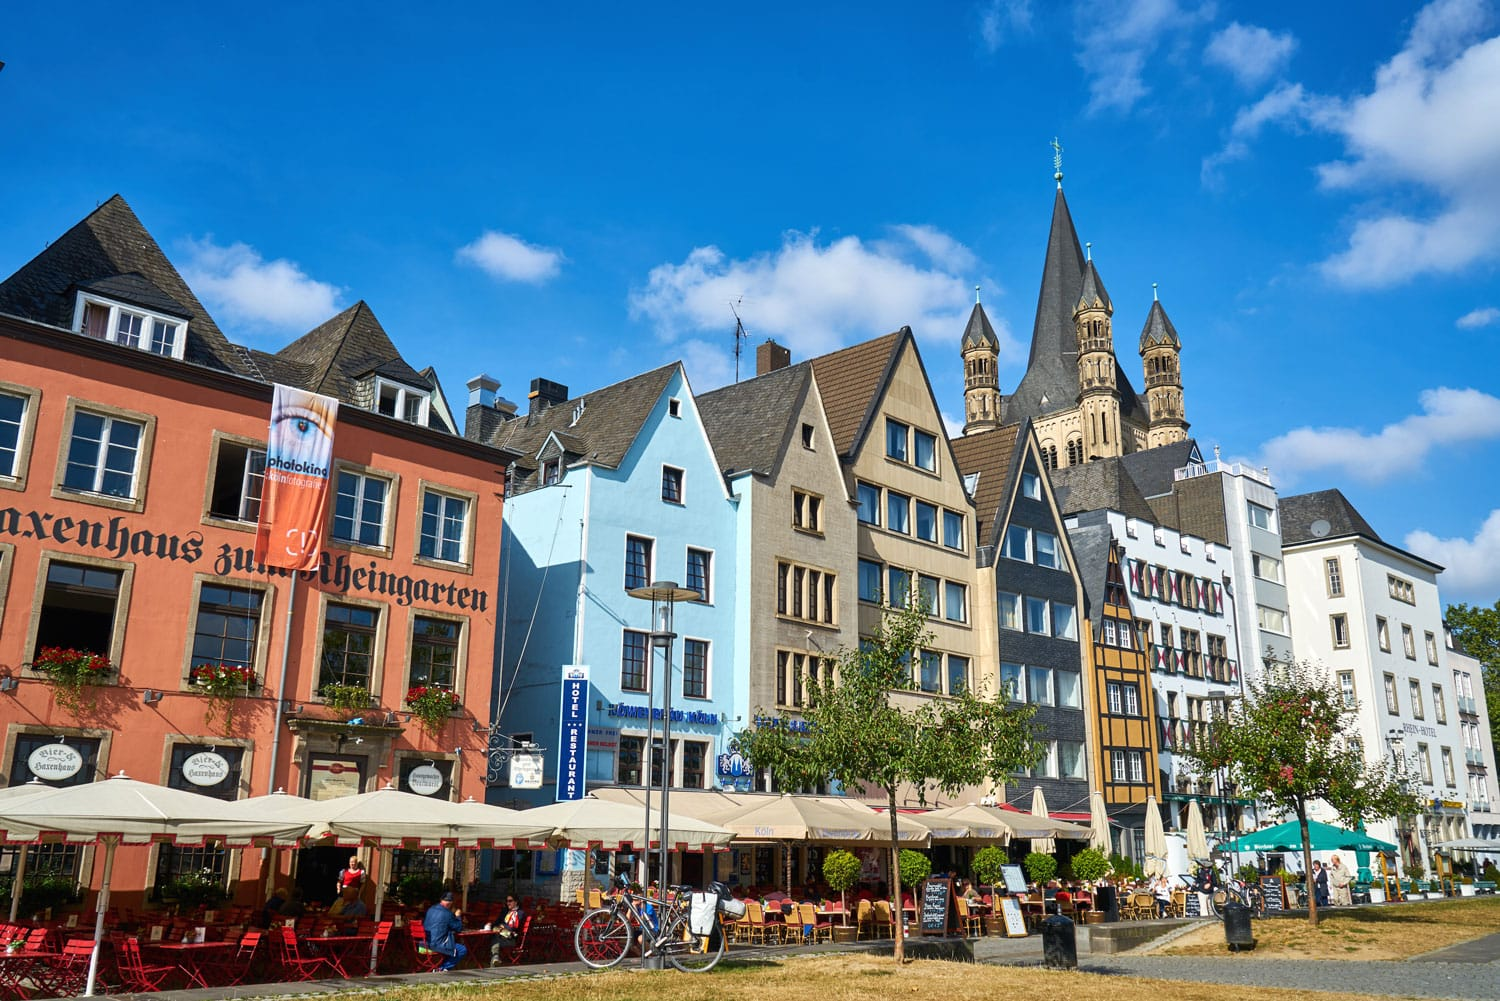 Colorful houses, bars and restaurants in the old city Cologne, Germany